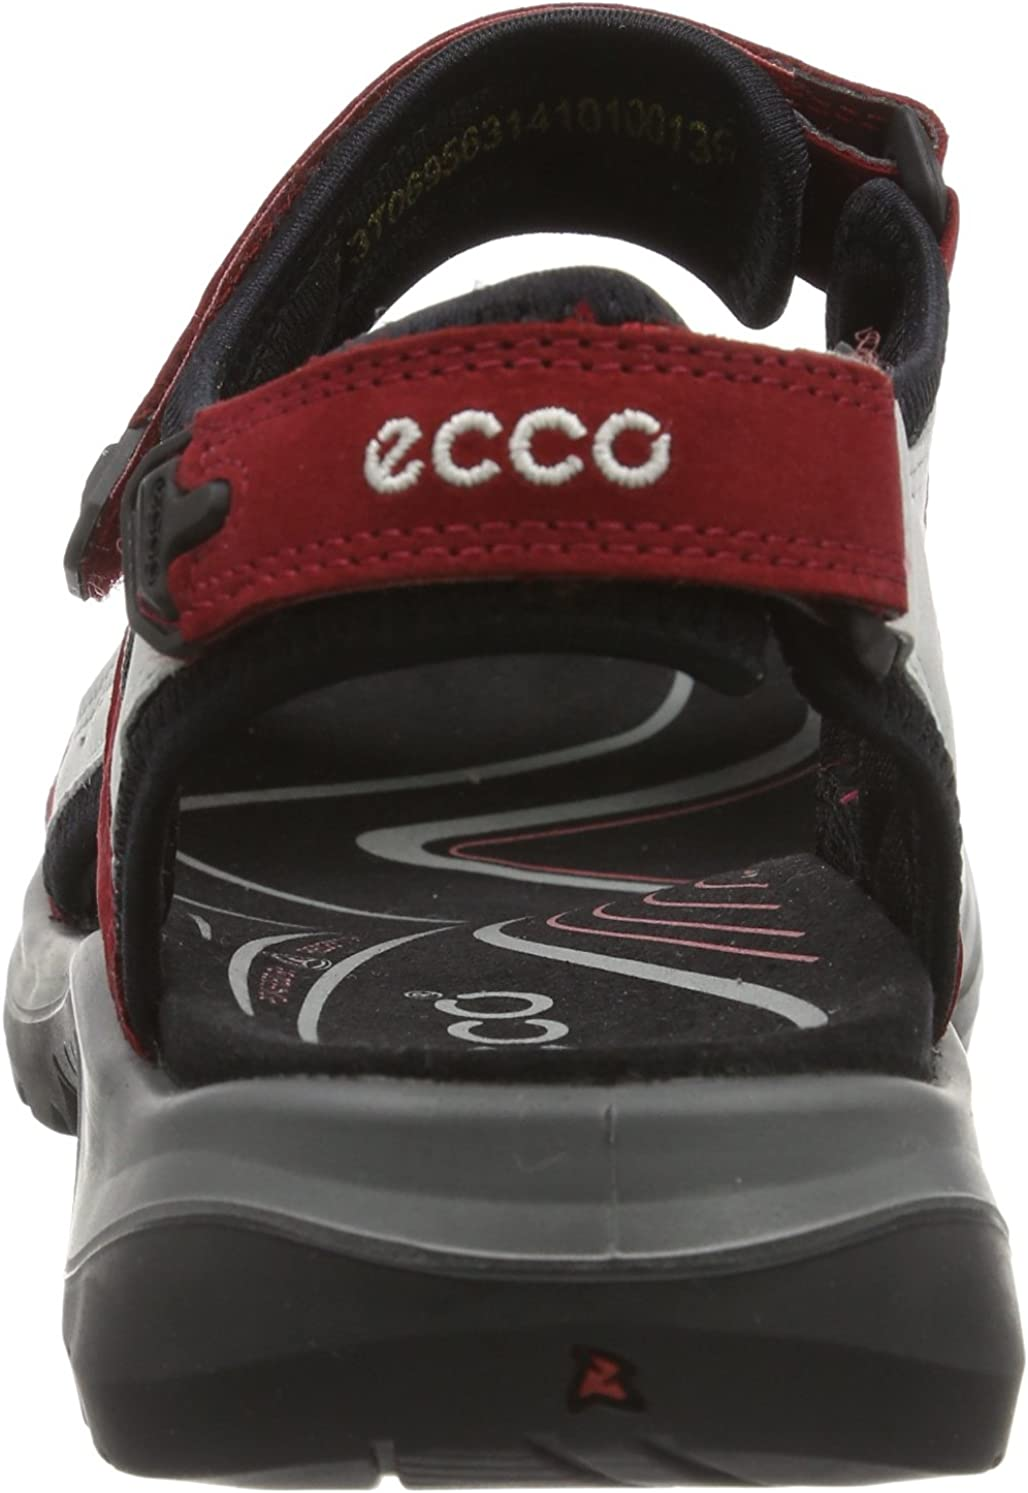 ECCO Women's Offroad Hiking Sandals Red Chilired Concrete Black 55287